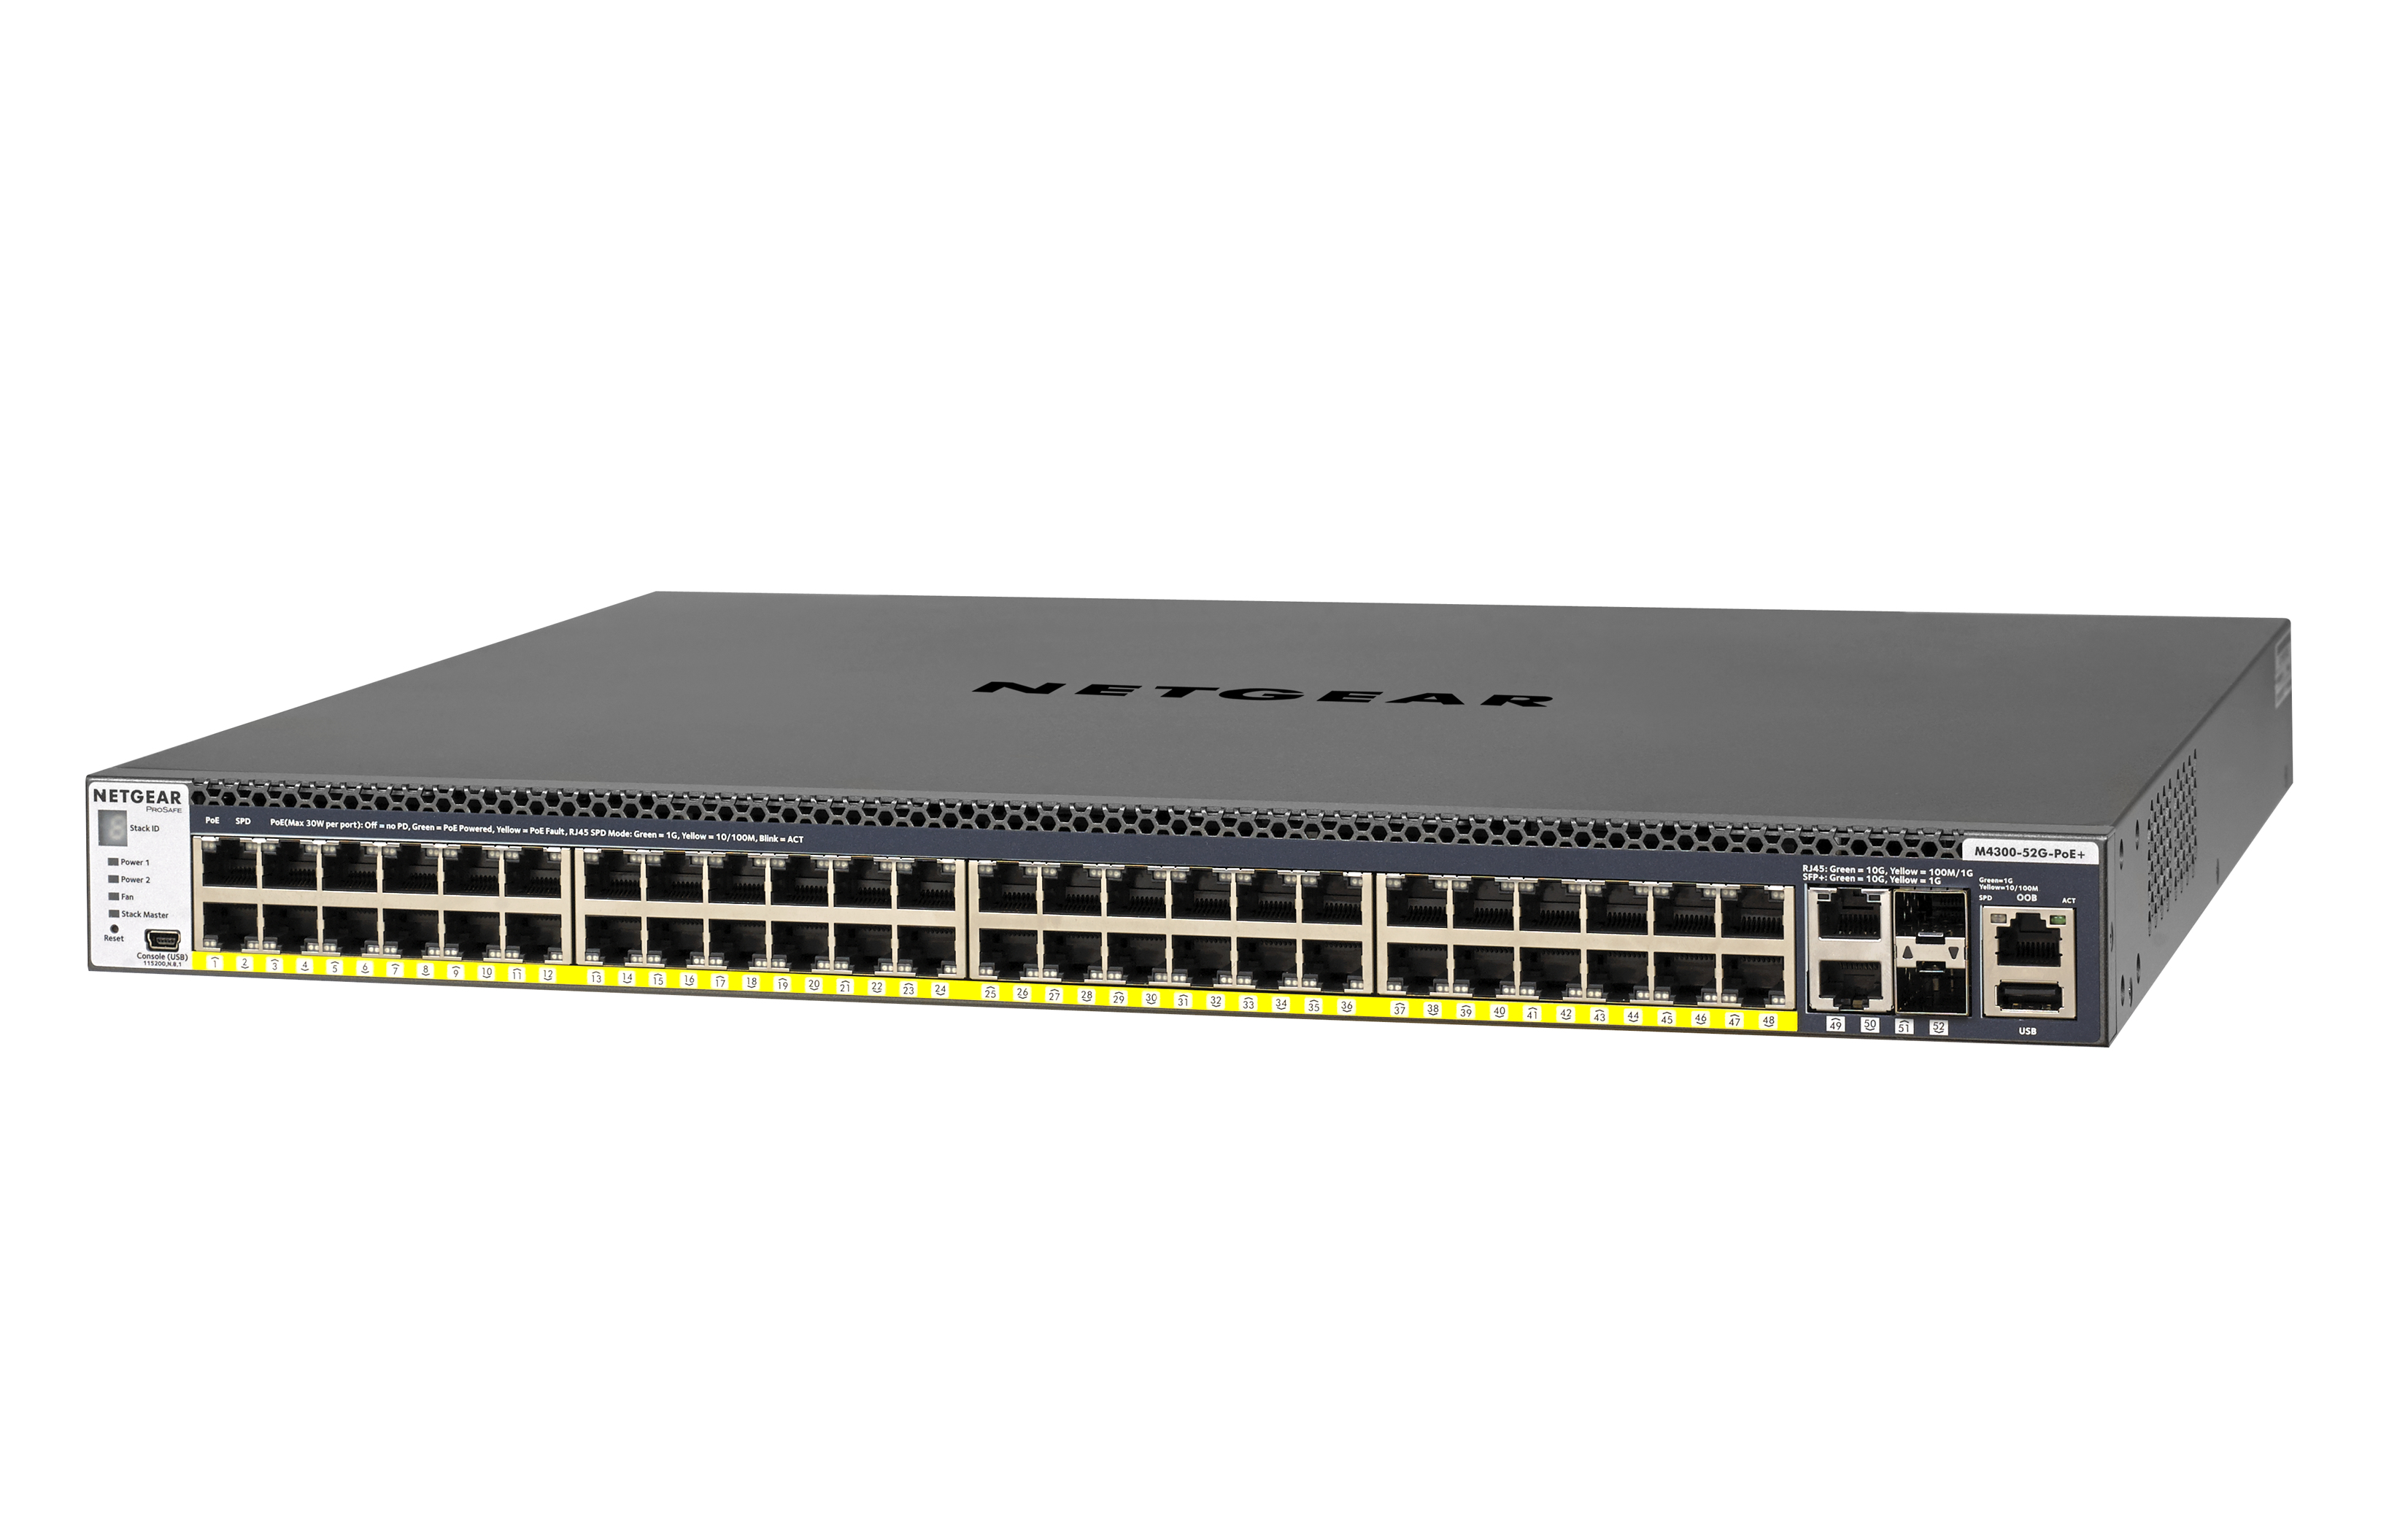 Netgear M4300-52G-PoE+ 550W PSU Managed network switch L2/L3/L4 Gigabit Ethernet (10/100/1000) Power over Ethernet (PoE) 1U Blac